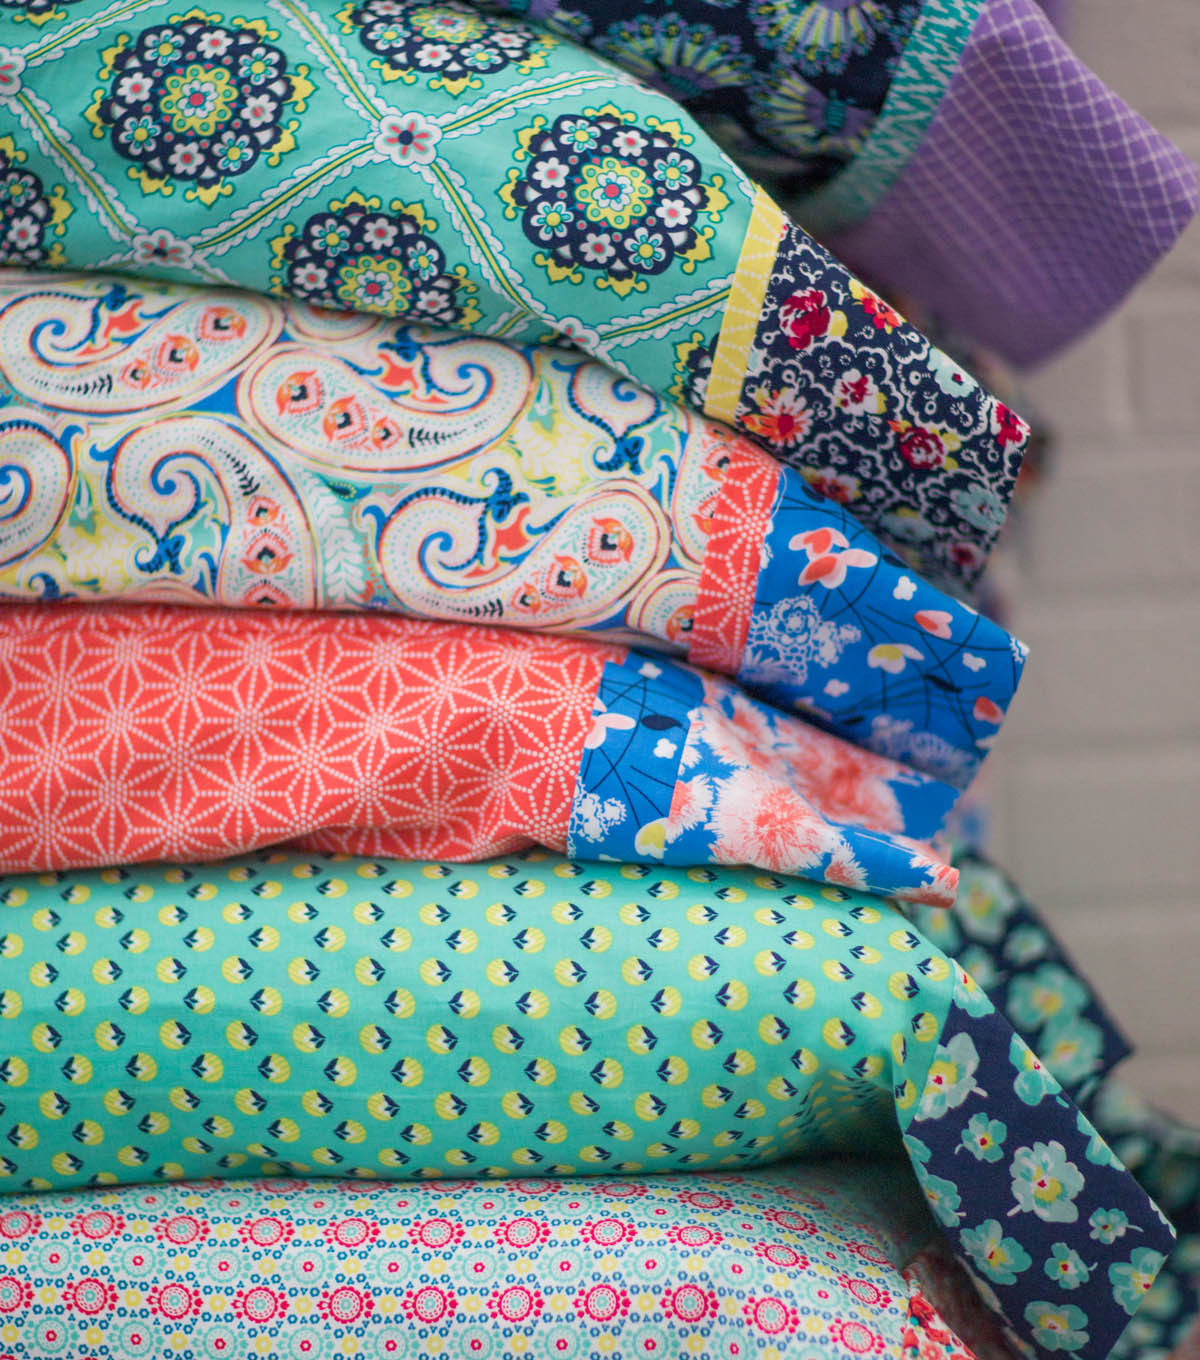 How To Make A Pillowcase With Cuff Joann